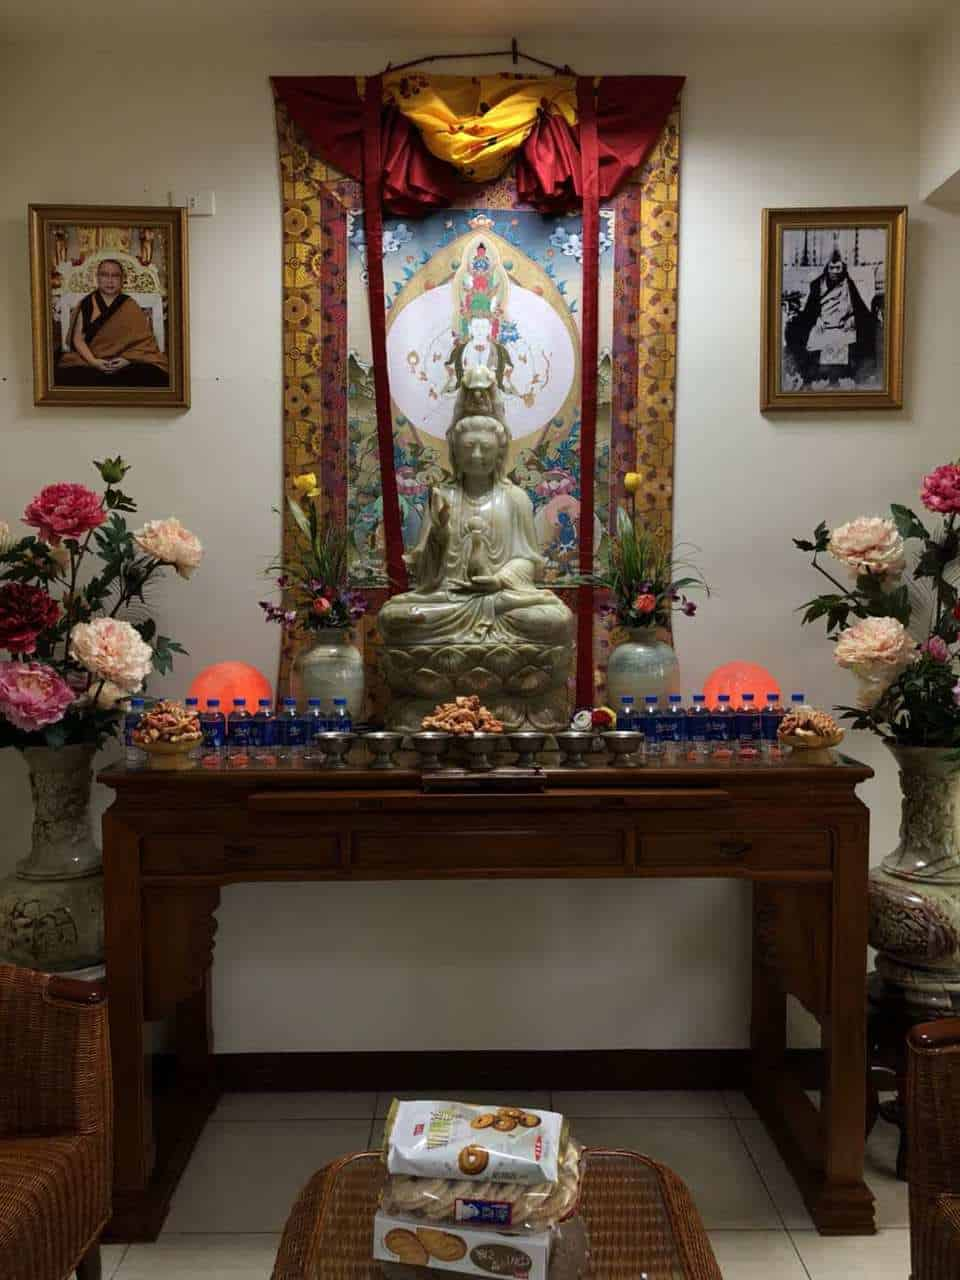 GosokRinpoche New Year 2018 Image_20180217221007